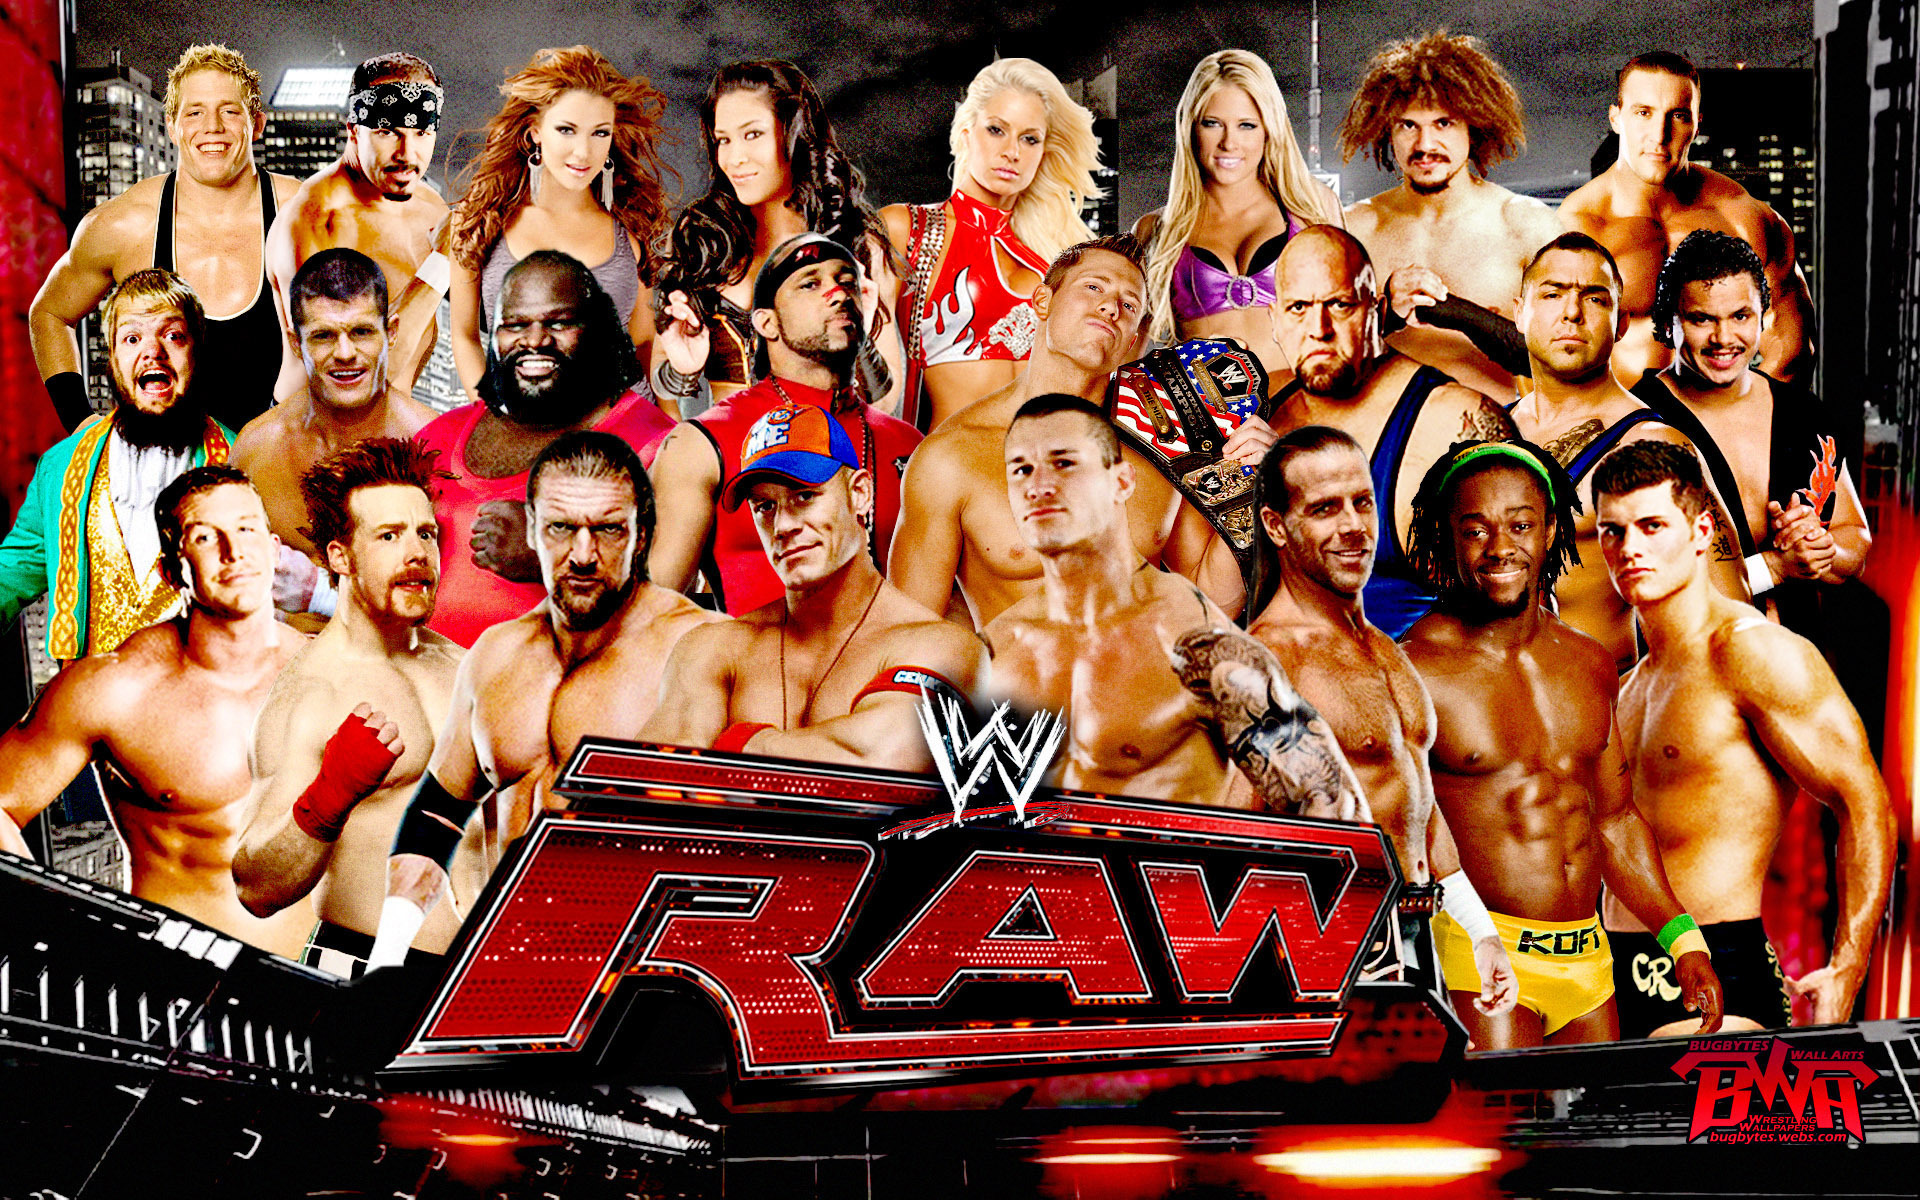 Wwe Raw Hd Wallpaper Widescreen